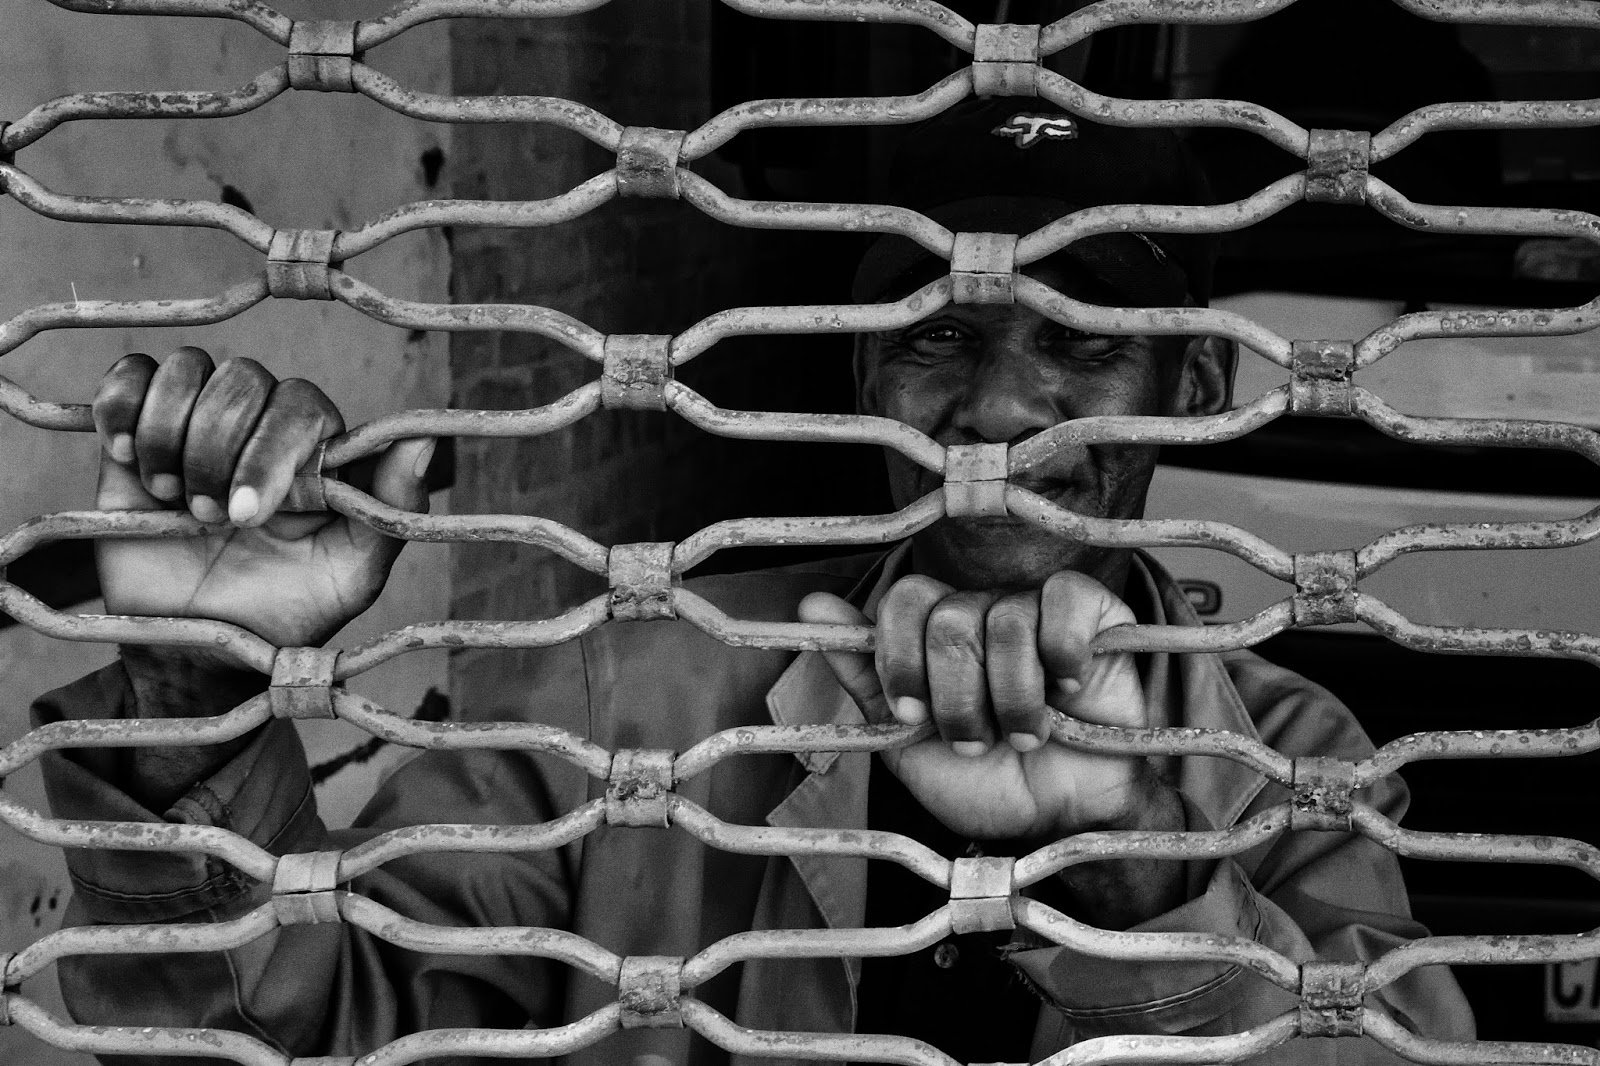 A man smiles with his hands holding on to the security bars in front of him